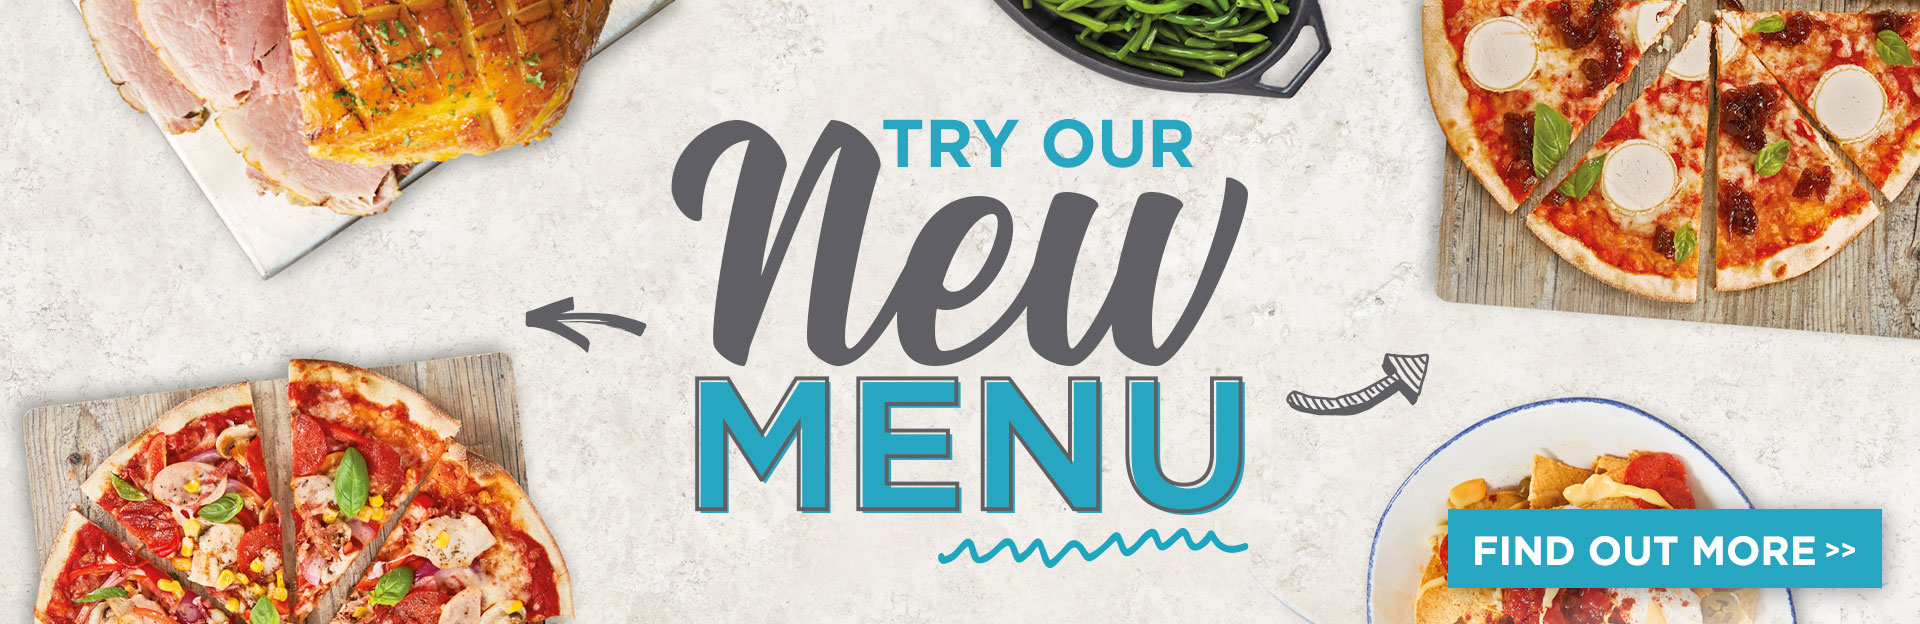 New menu at The Pig & Whistle